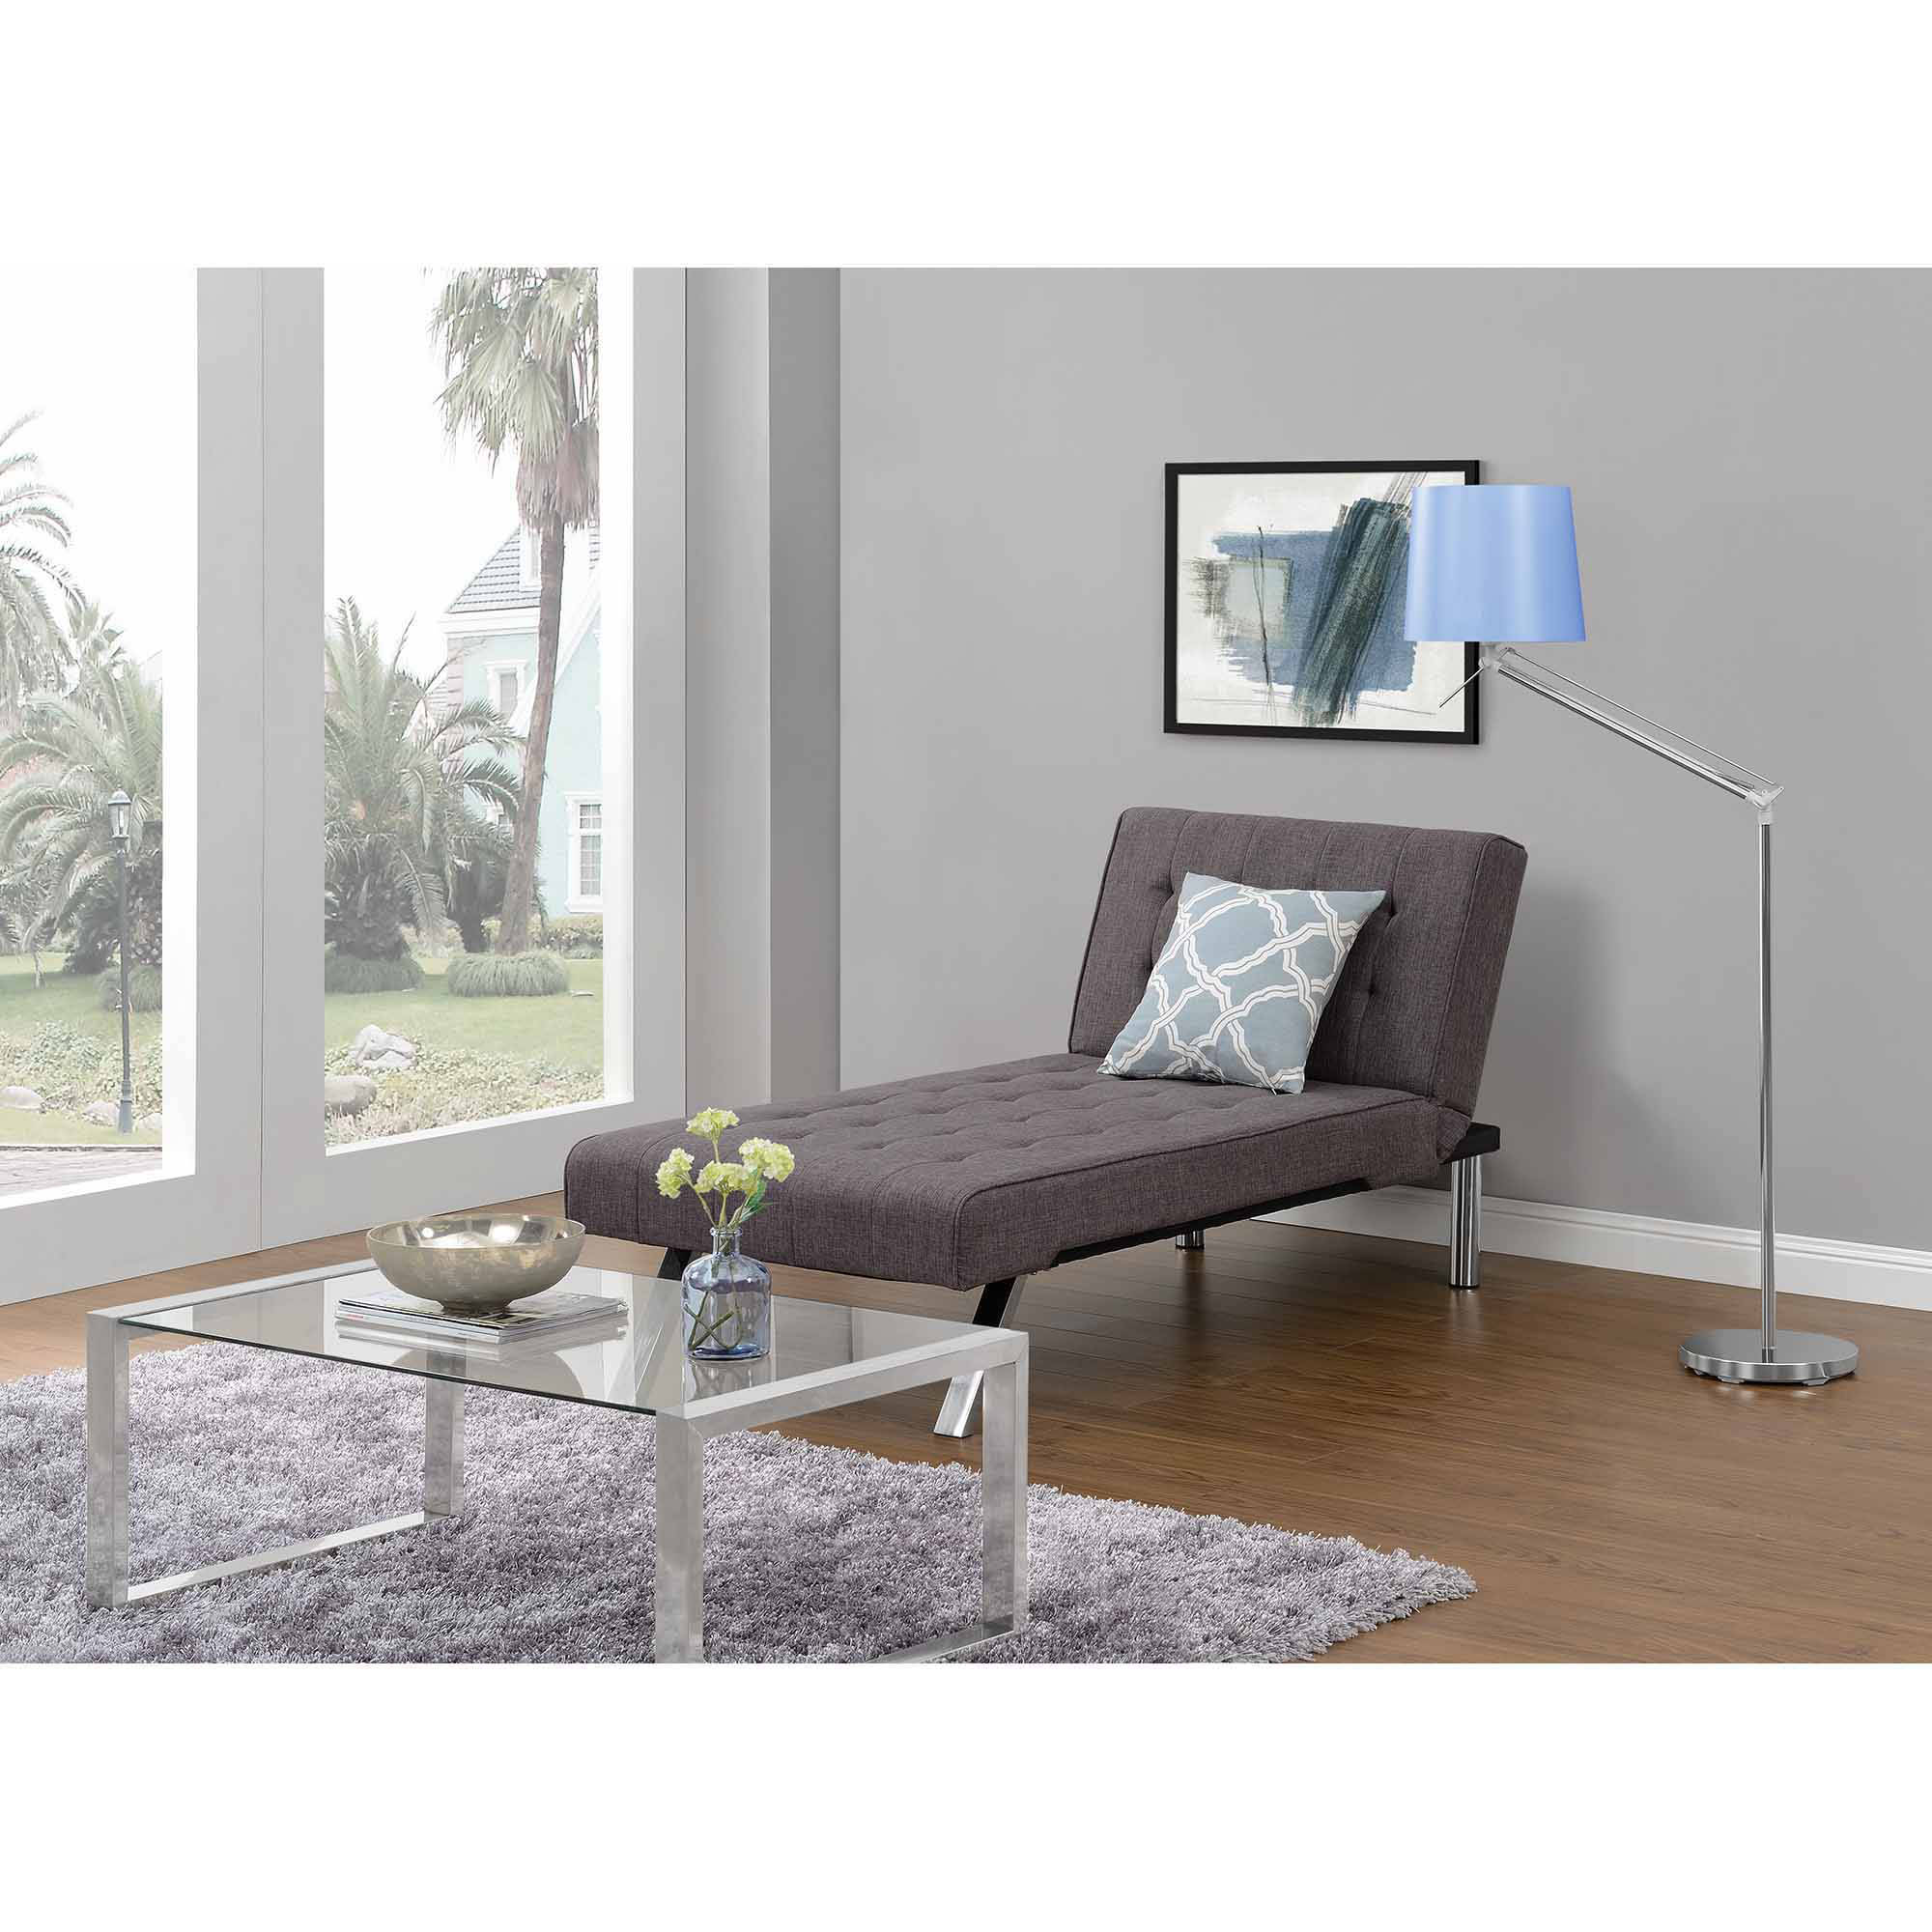 Emily Futon Chaise Lounger Multiple Colors